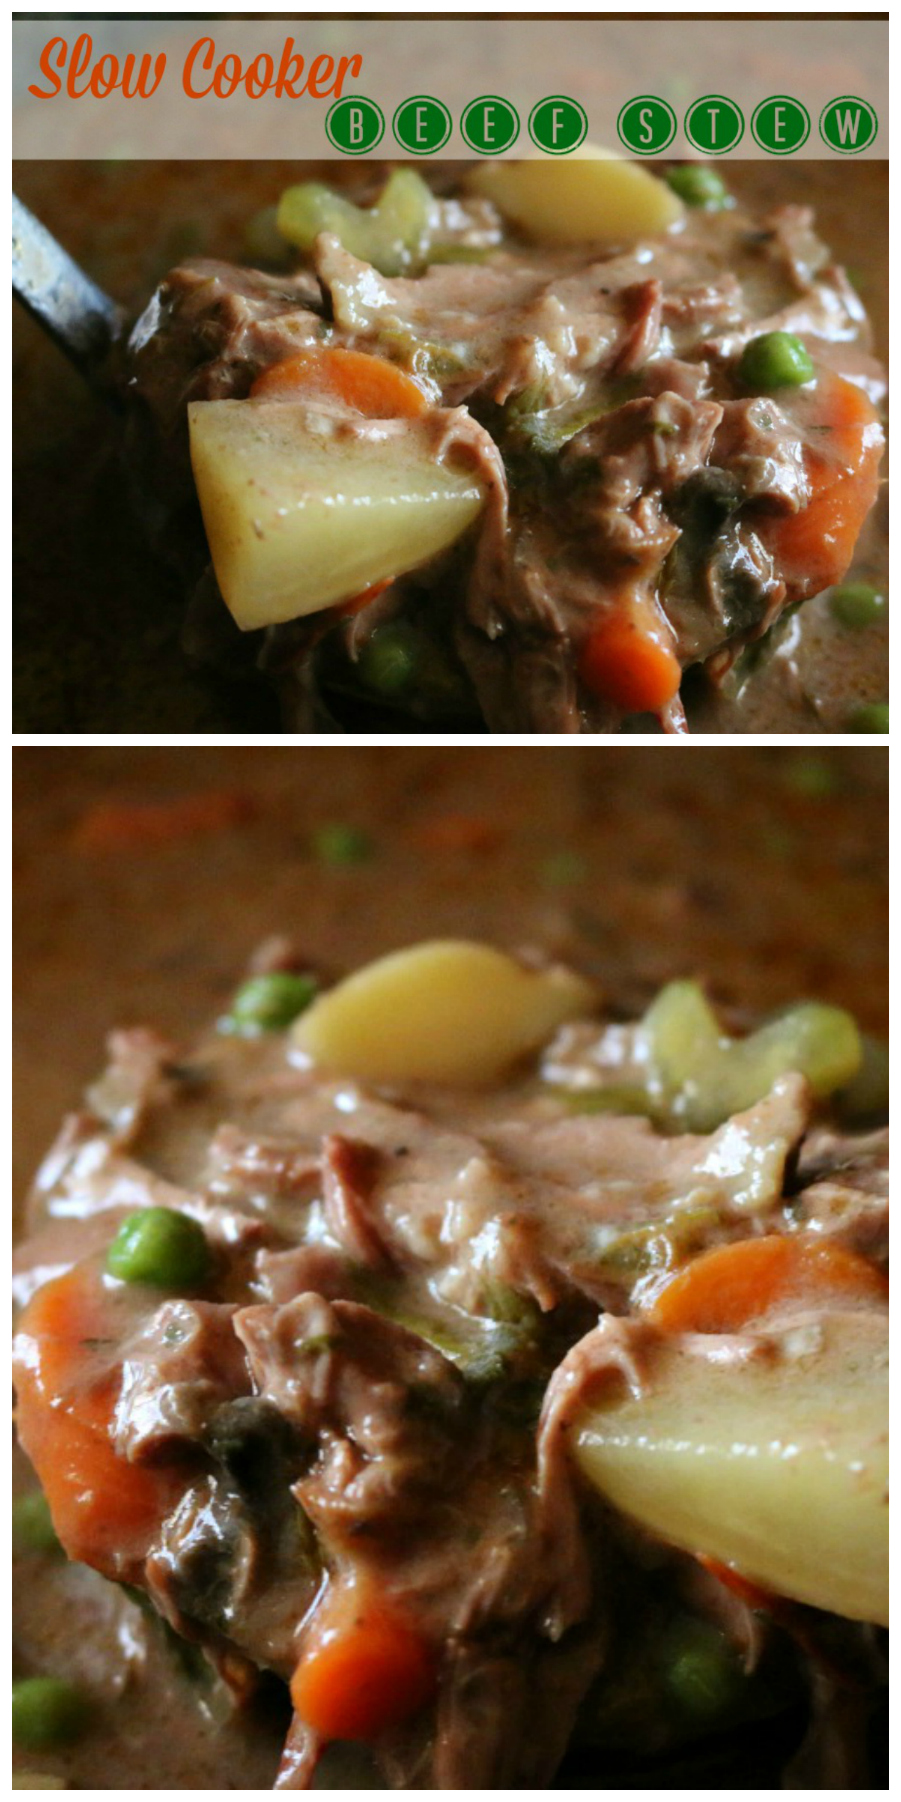 Slow Cooker Beef Stew - Simple and delicious recipe | www.ceceliasgoodstuff.com